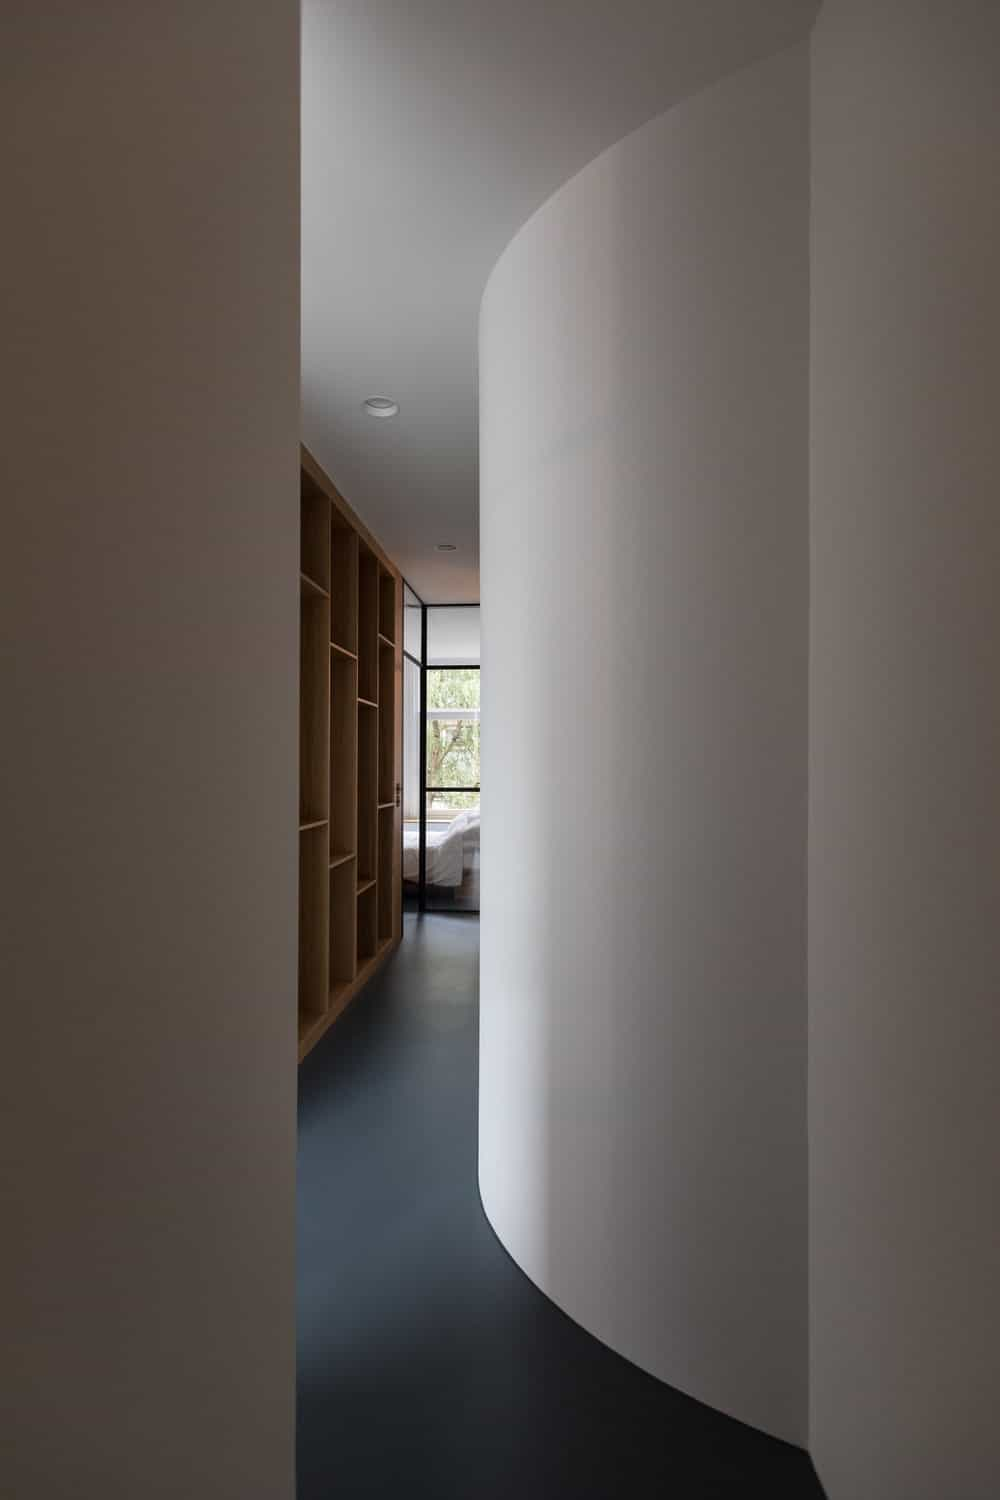 White curved walls inside the primary bedroom in the Frans Halsstraat designed by Cantero Architecture.